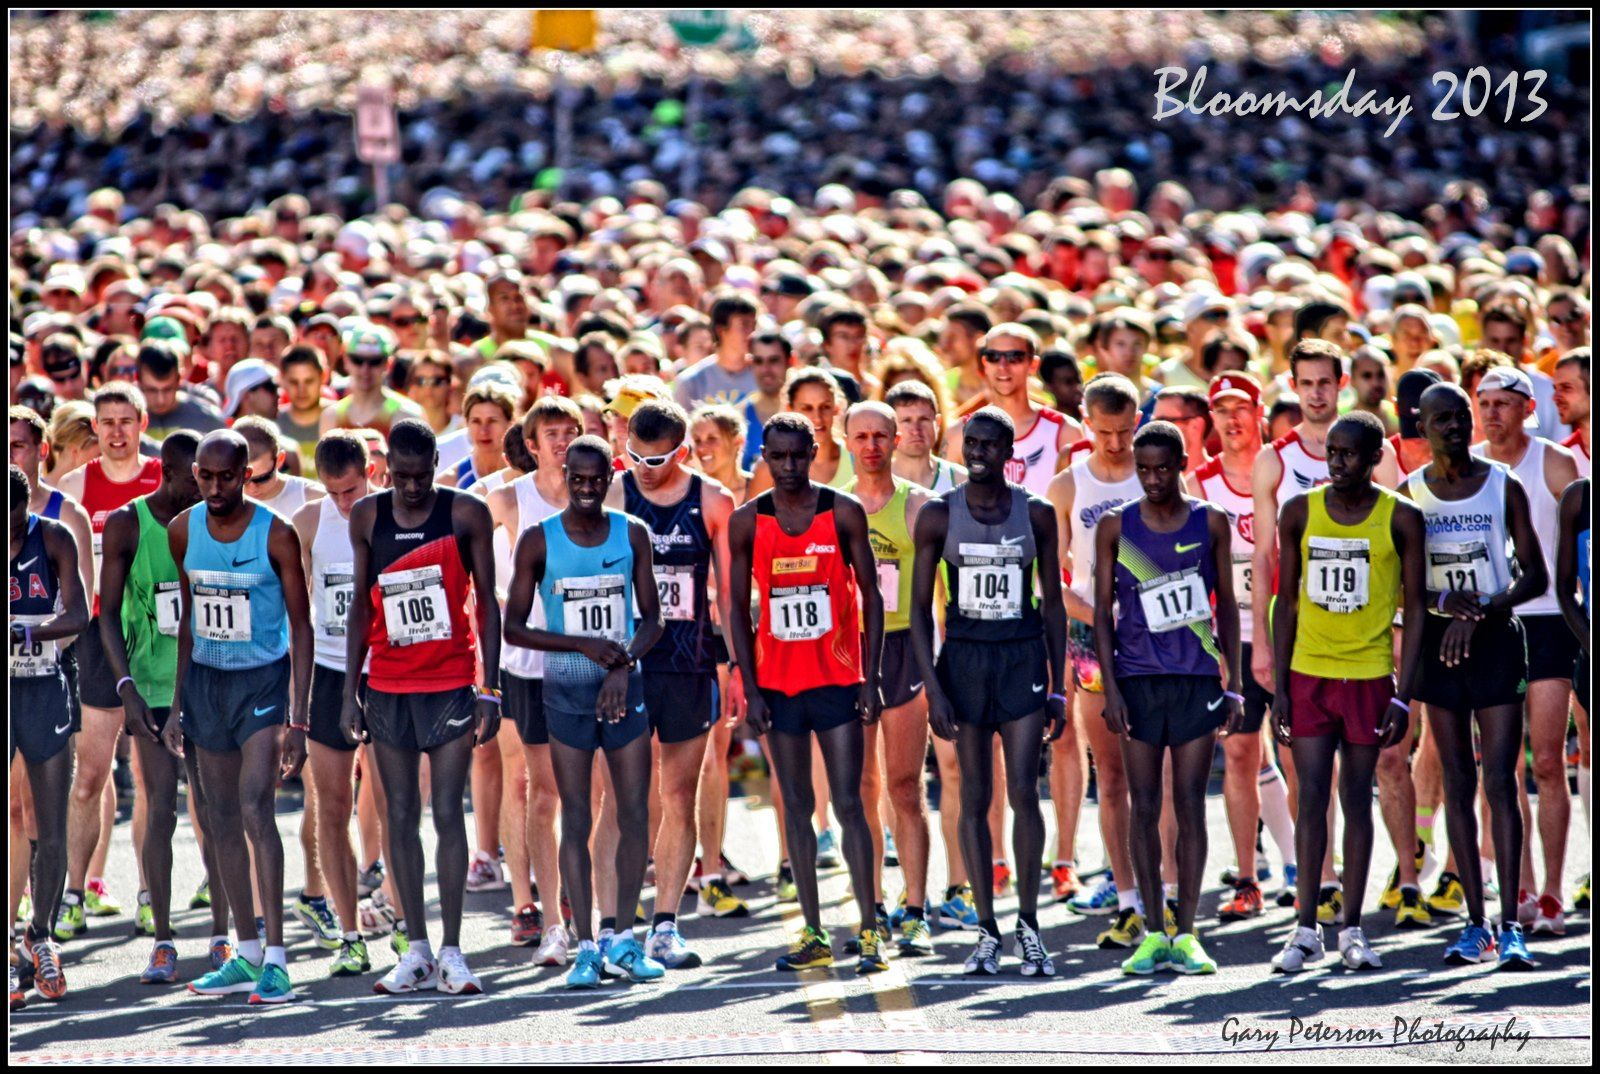 On your marks, get set, BLOOMSDAY!  Here's the Spokane Bloomsday starting line through the lens of photographer Gary Peterson.